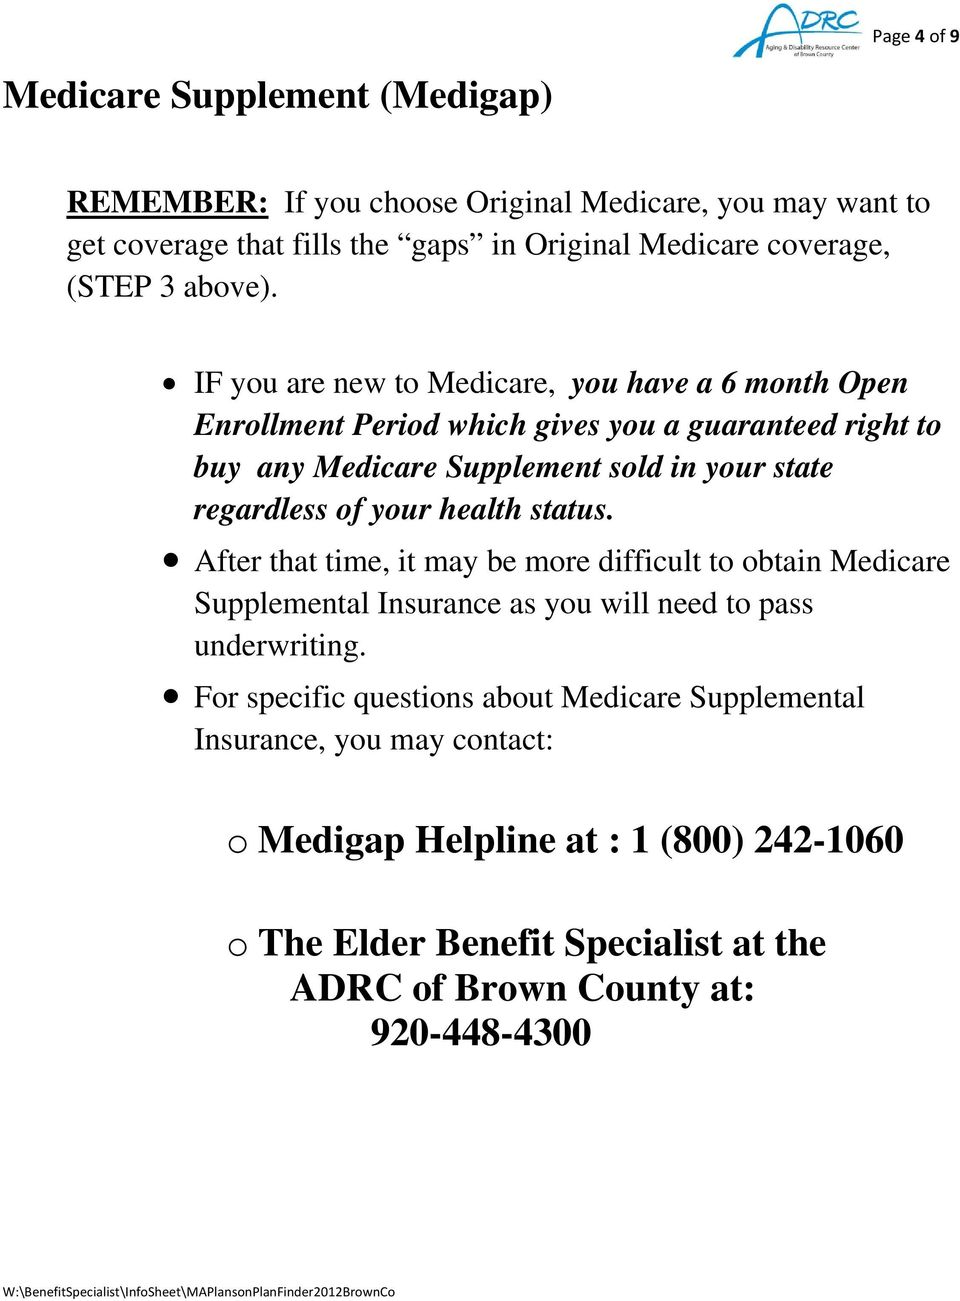 IF you are new to Medicare, you have a 6 month Open Enrollment Period which gives you a guaranteed right to buy any Medicare Supplement sold in your state regardless of